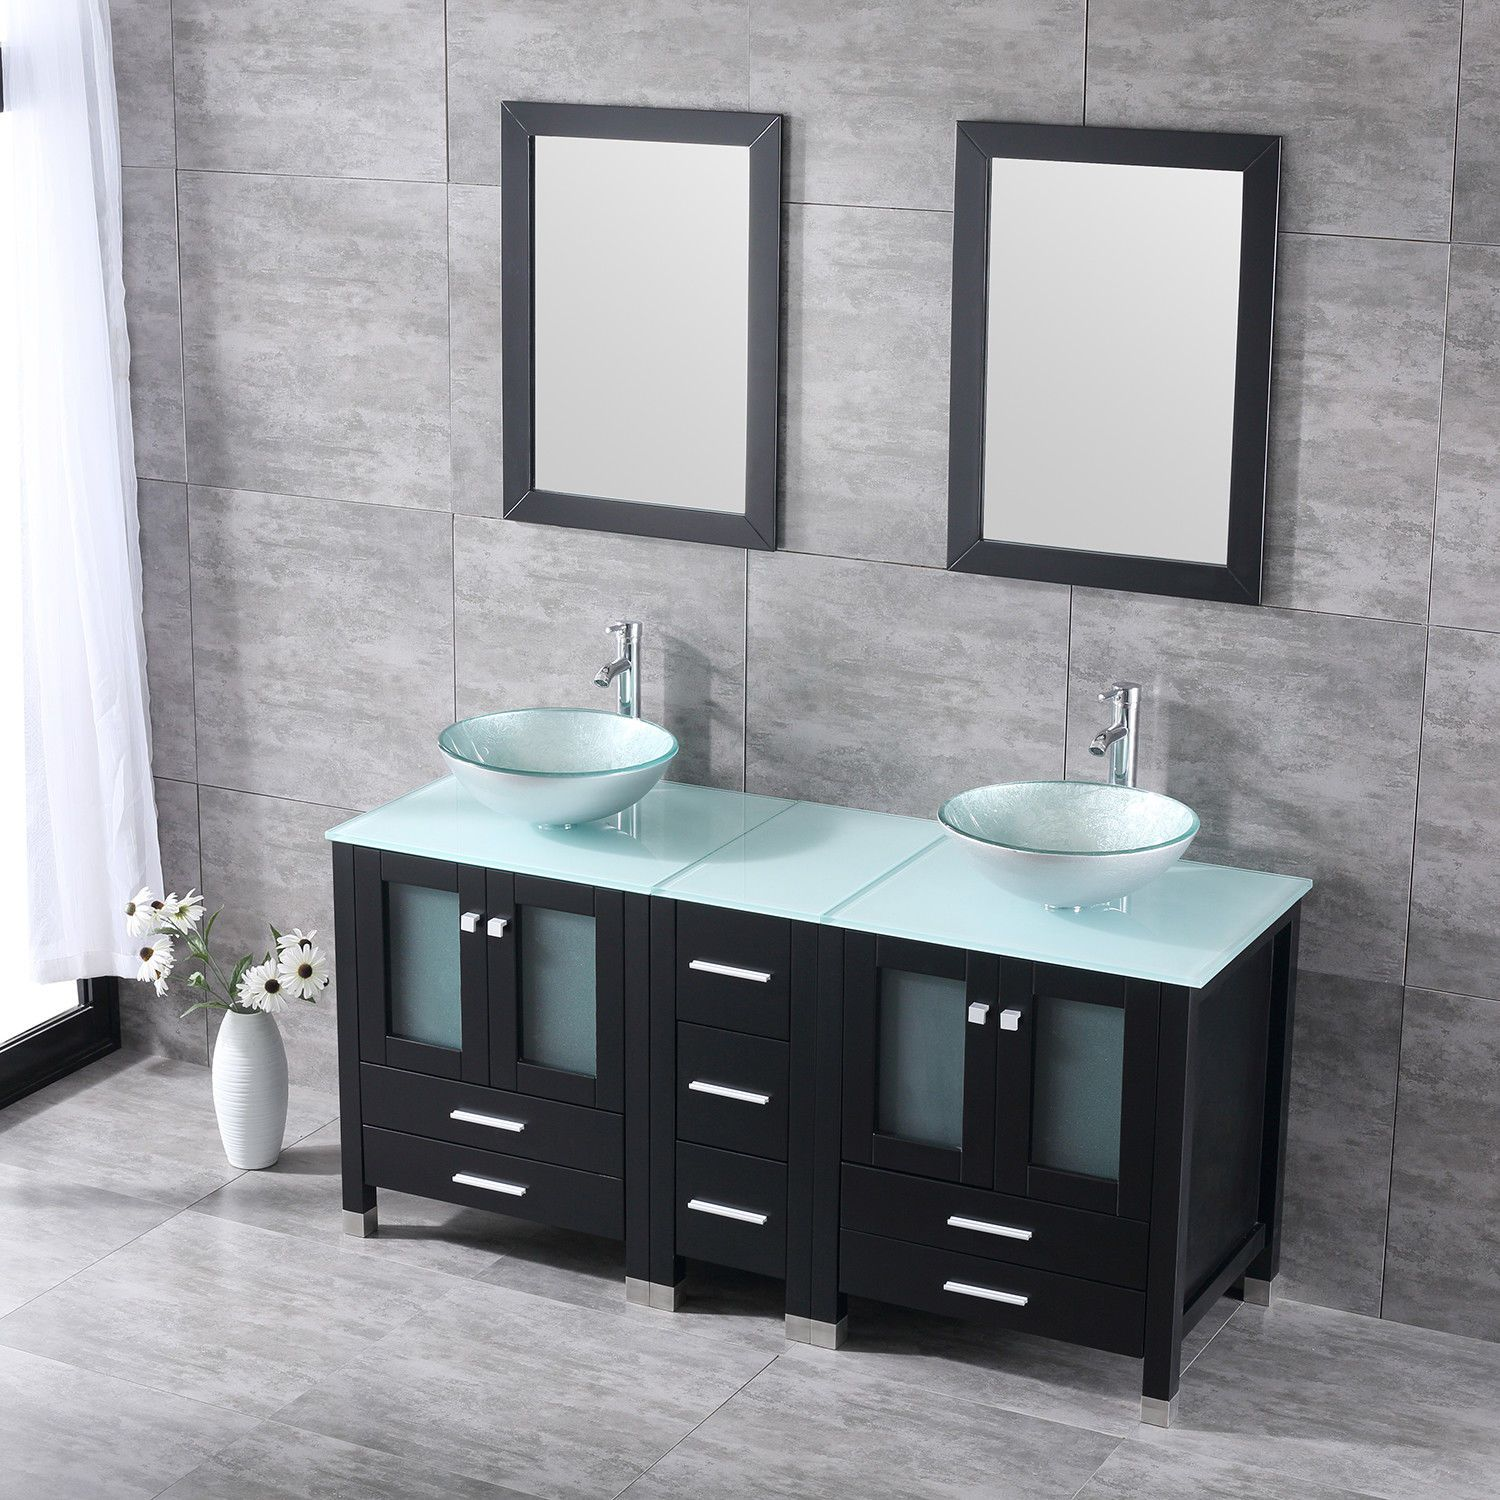 60 Bathroom Vanity Cabinet Double Solid Wood Set Tempered Glass